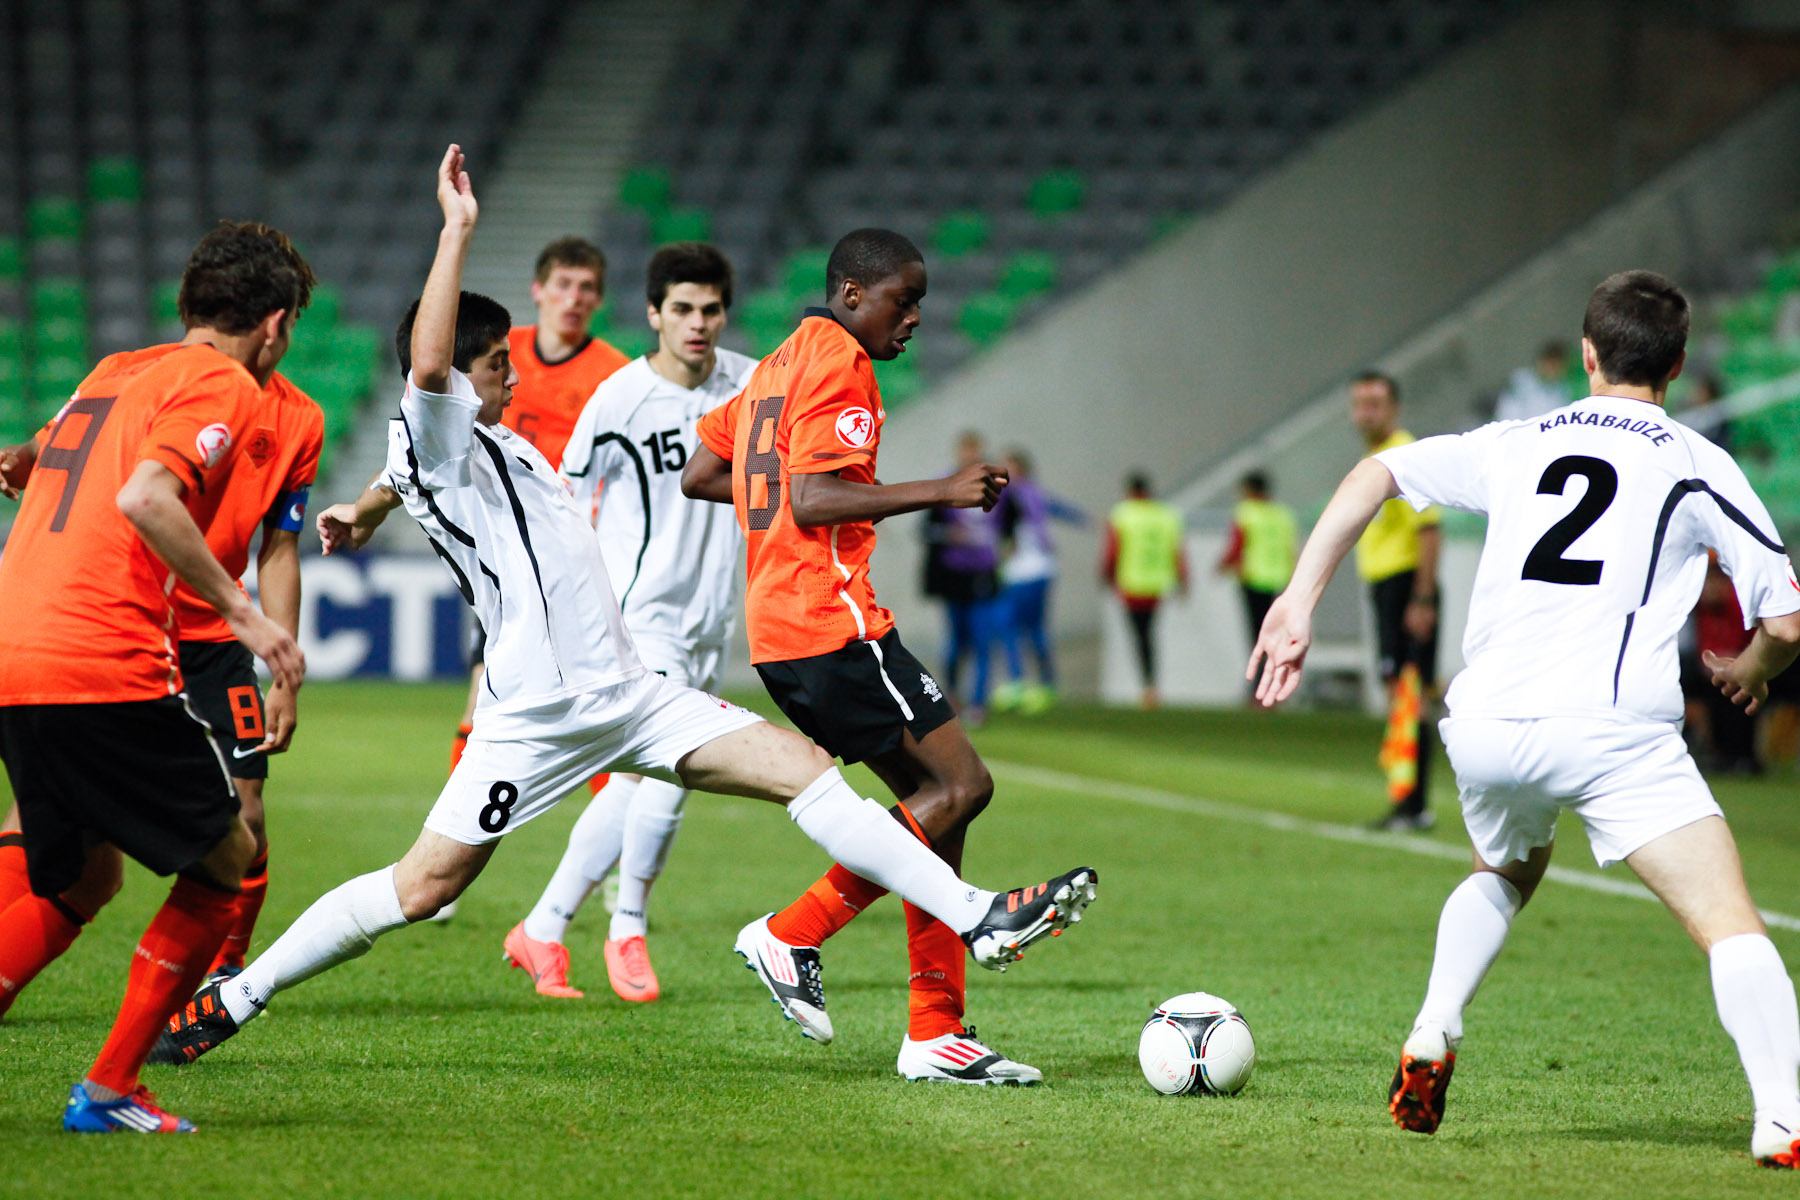 Queensy Menig of Netherlands is challanged by Giorgi Papunashvili of Georgia during the UEFA U-17 European Championship semi-final match between Netherlands and Georgia at the SRC Stozice Stadium in Ljubljana, Slovenia, May 13, 2012.